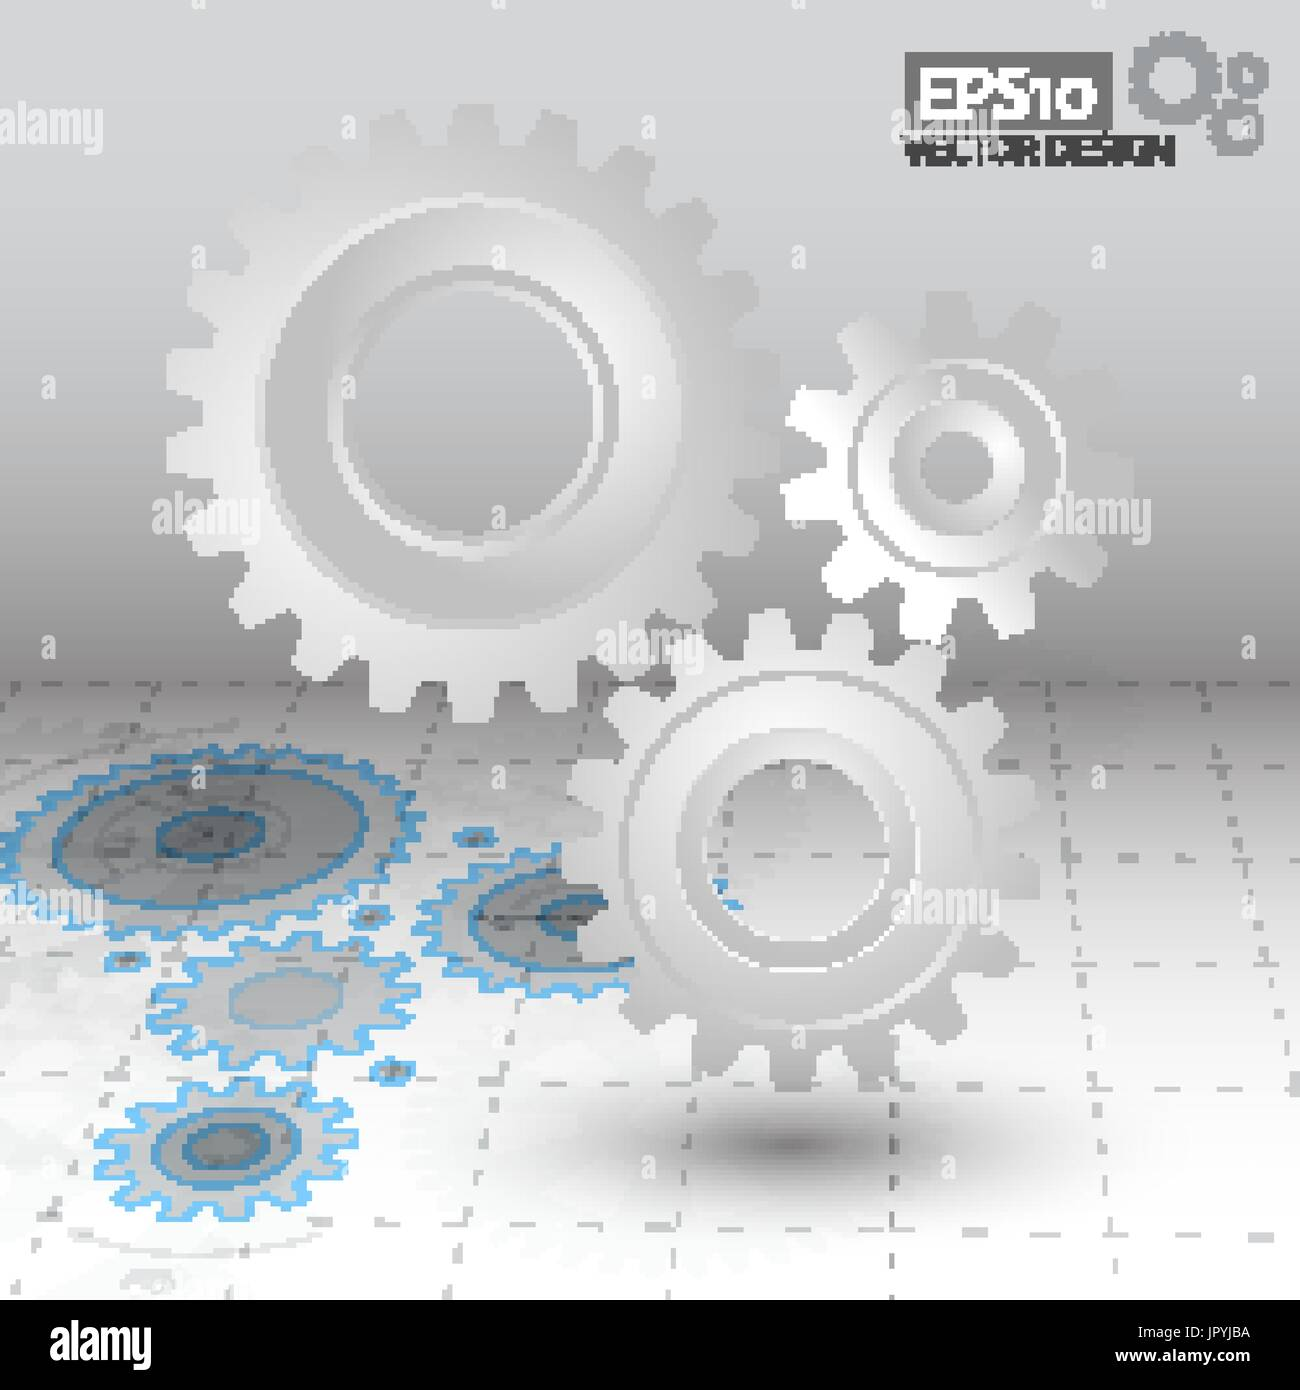 White 3d gears on the gray blueprint background infographic stock white 3d gears on the gray blueprint background infographic template cover template vector design eps10 malvernweather Image collections